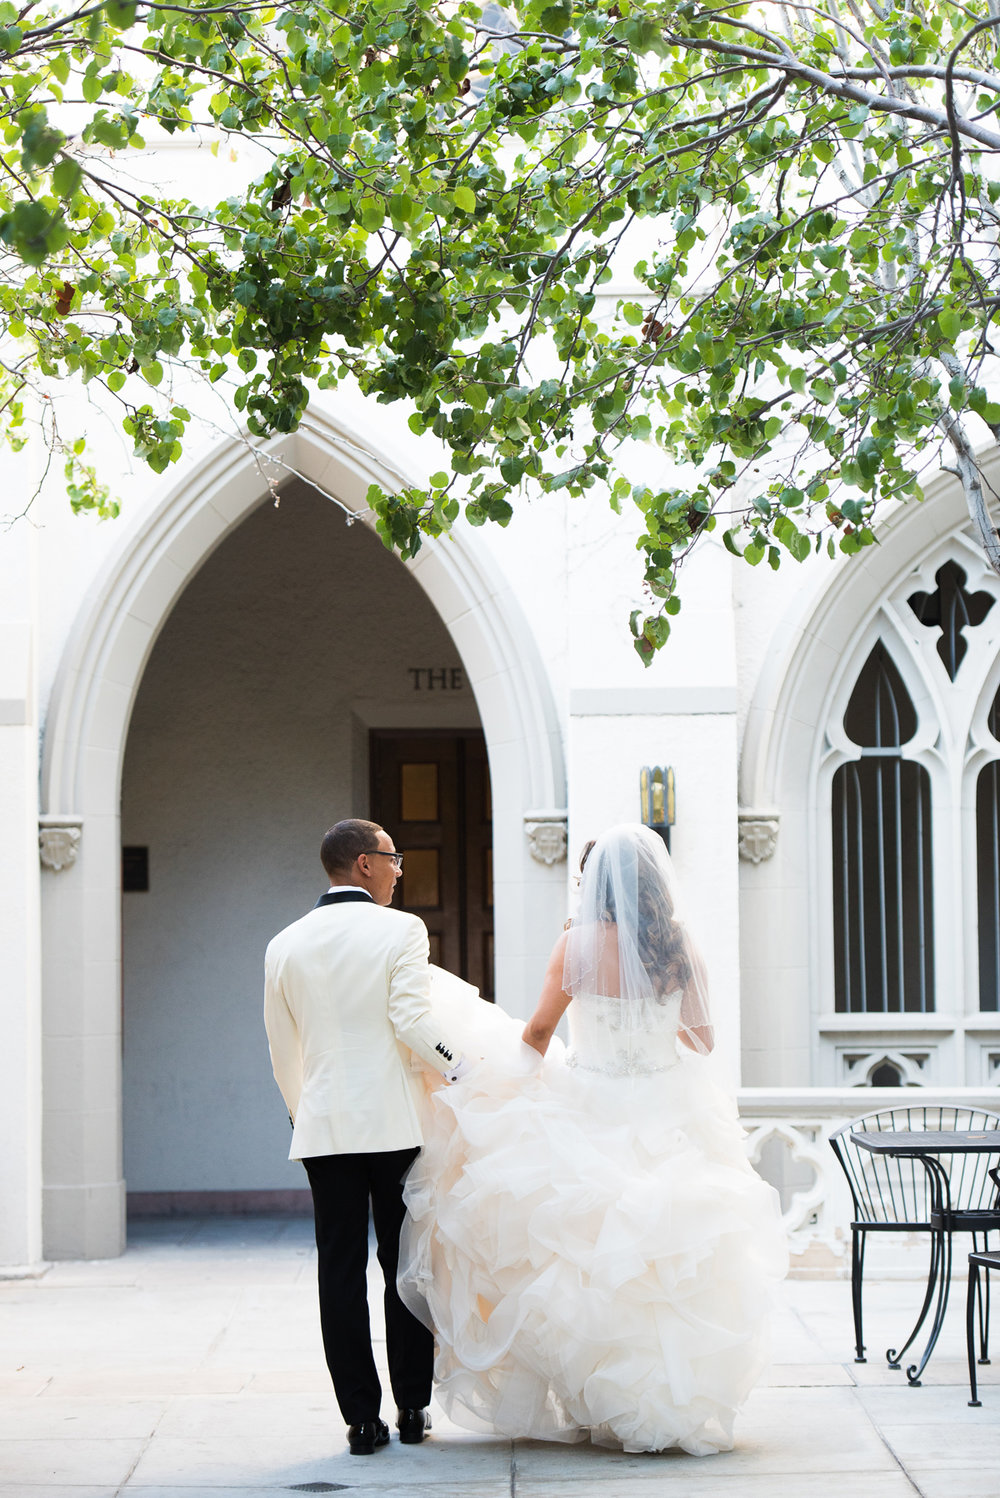 Dreamy Romantic Wedding at Historic Los Angeles Ebell Club bride and groom in courtyard of church.jpg